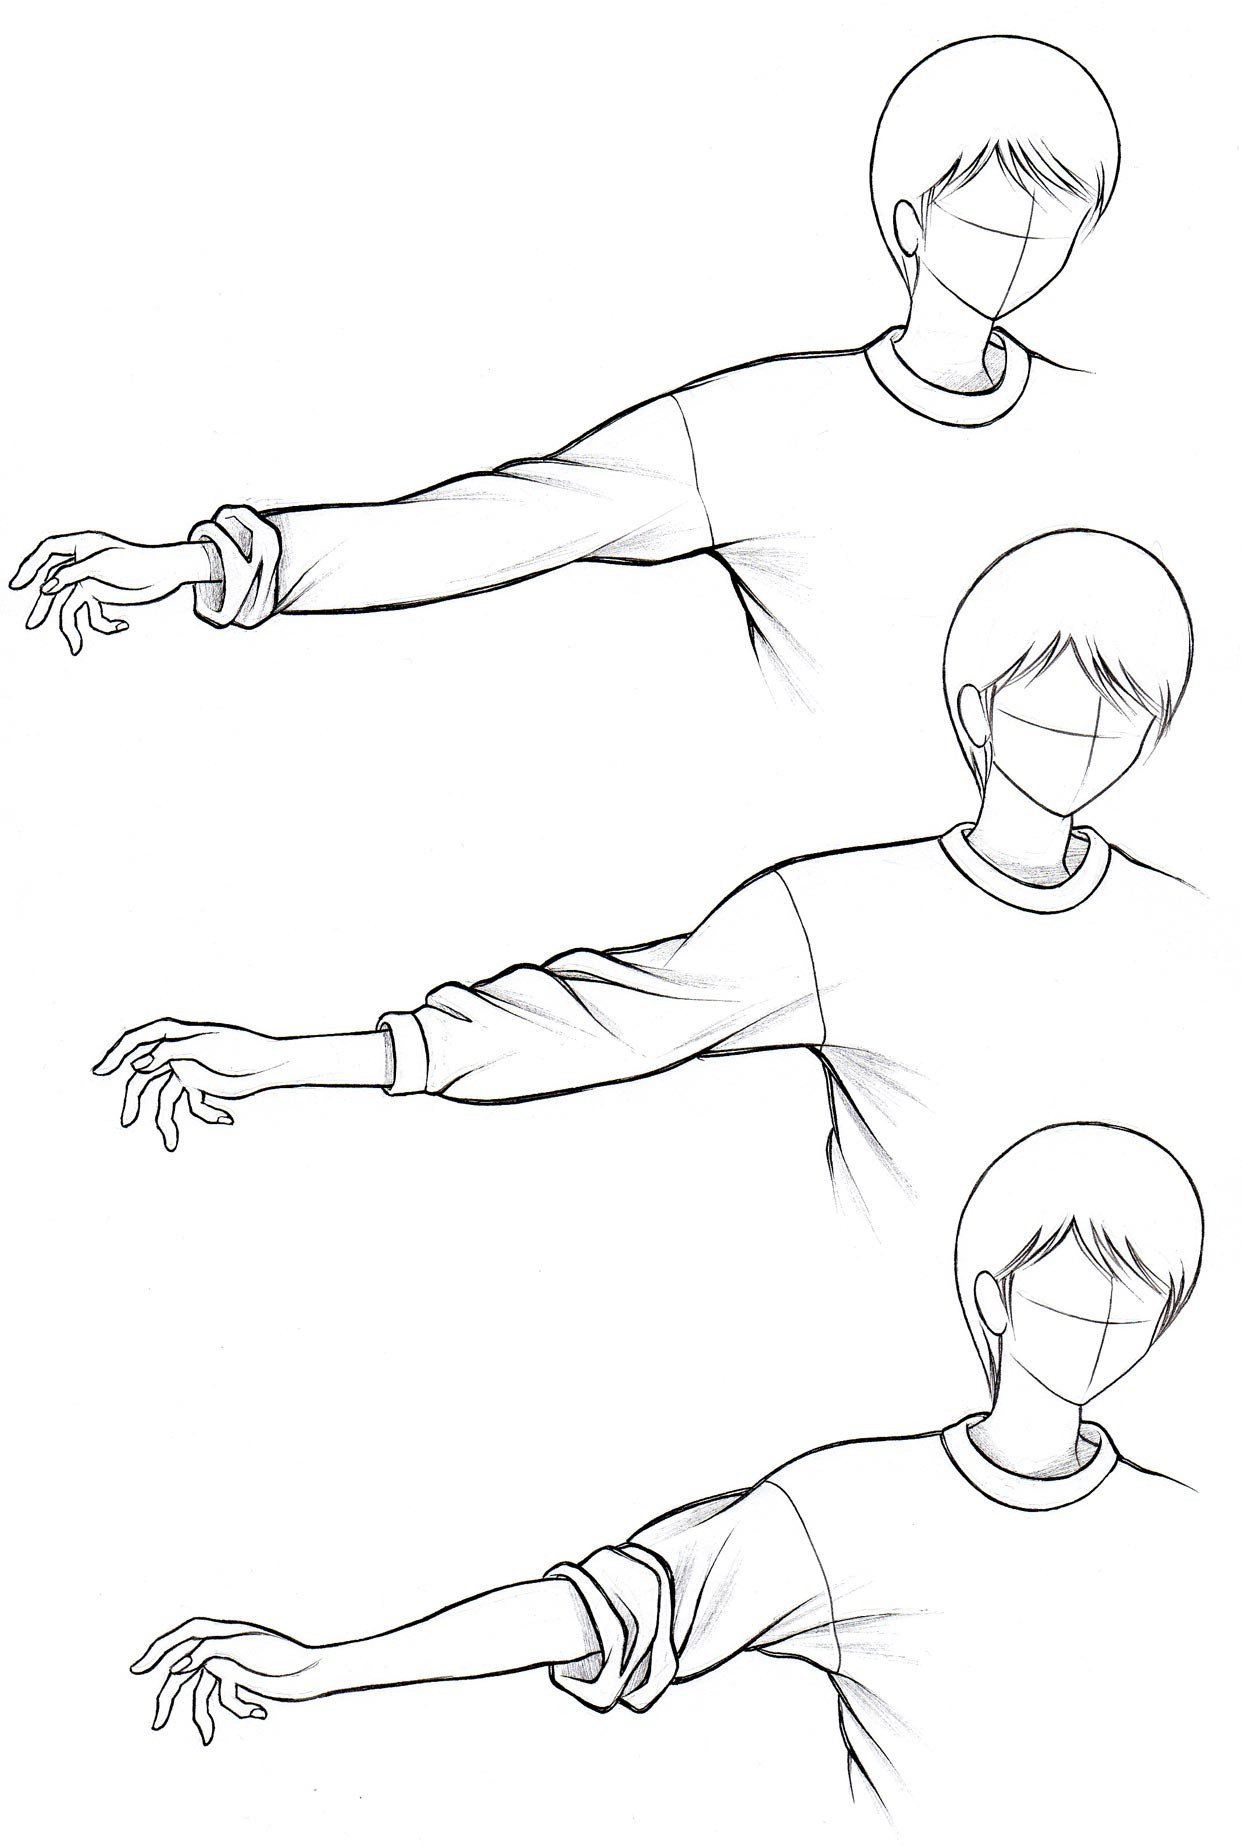 1242x1847 How To Draw Clothes (Part 2) Manga University Campus Store